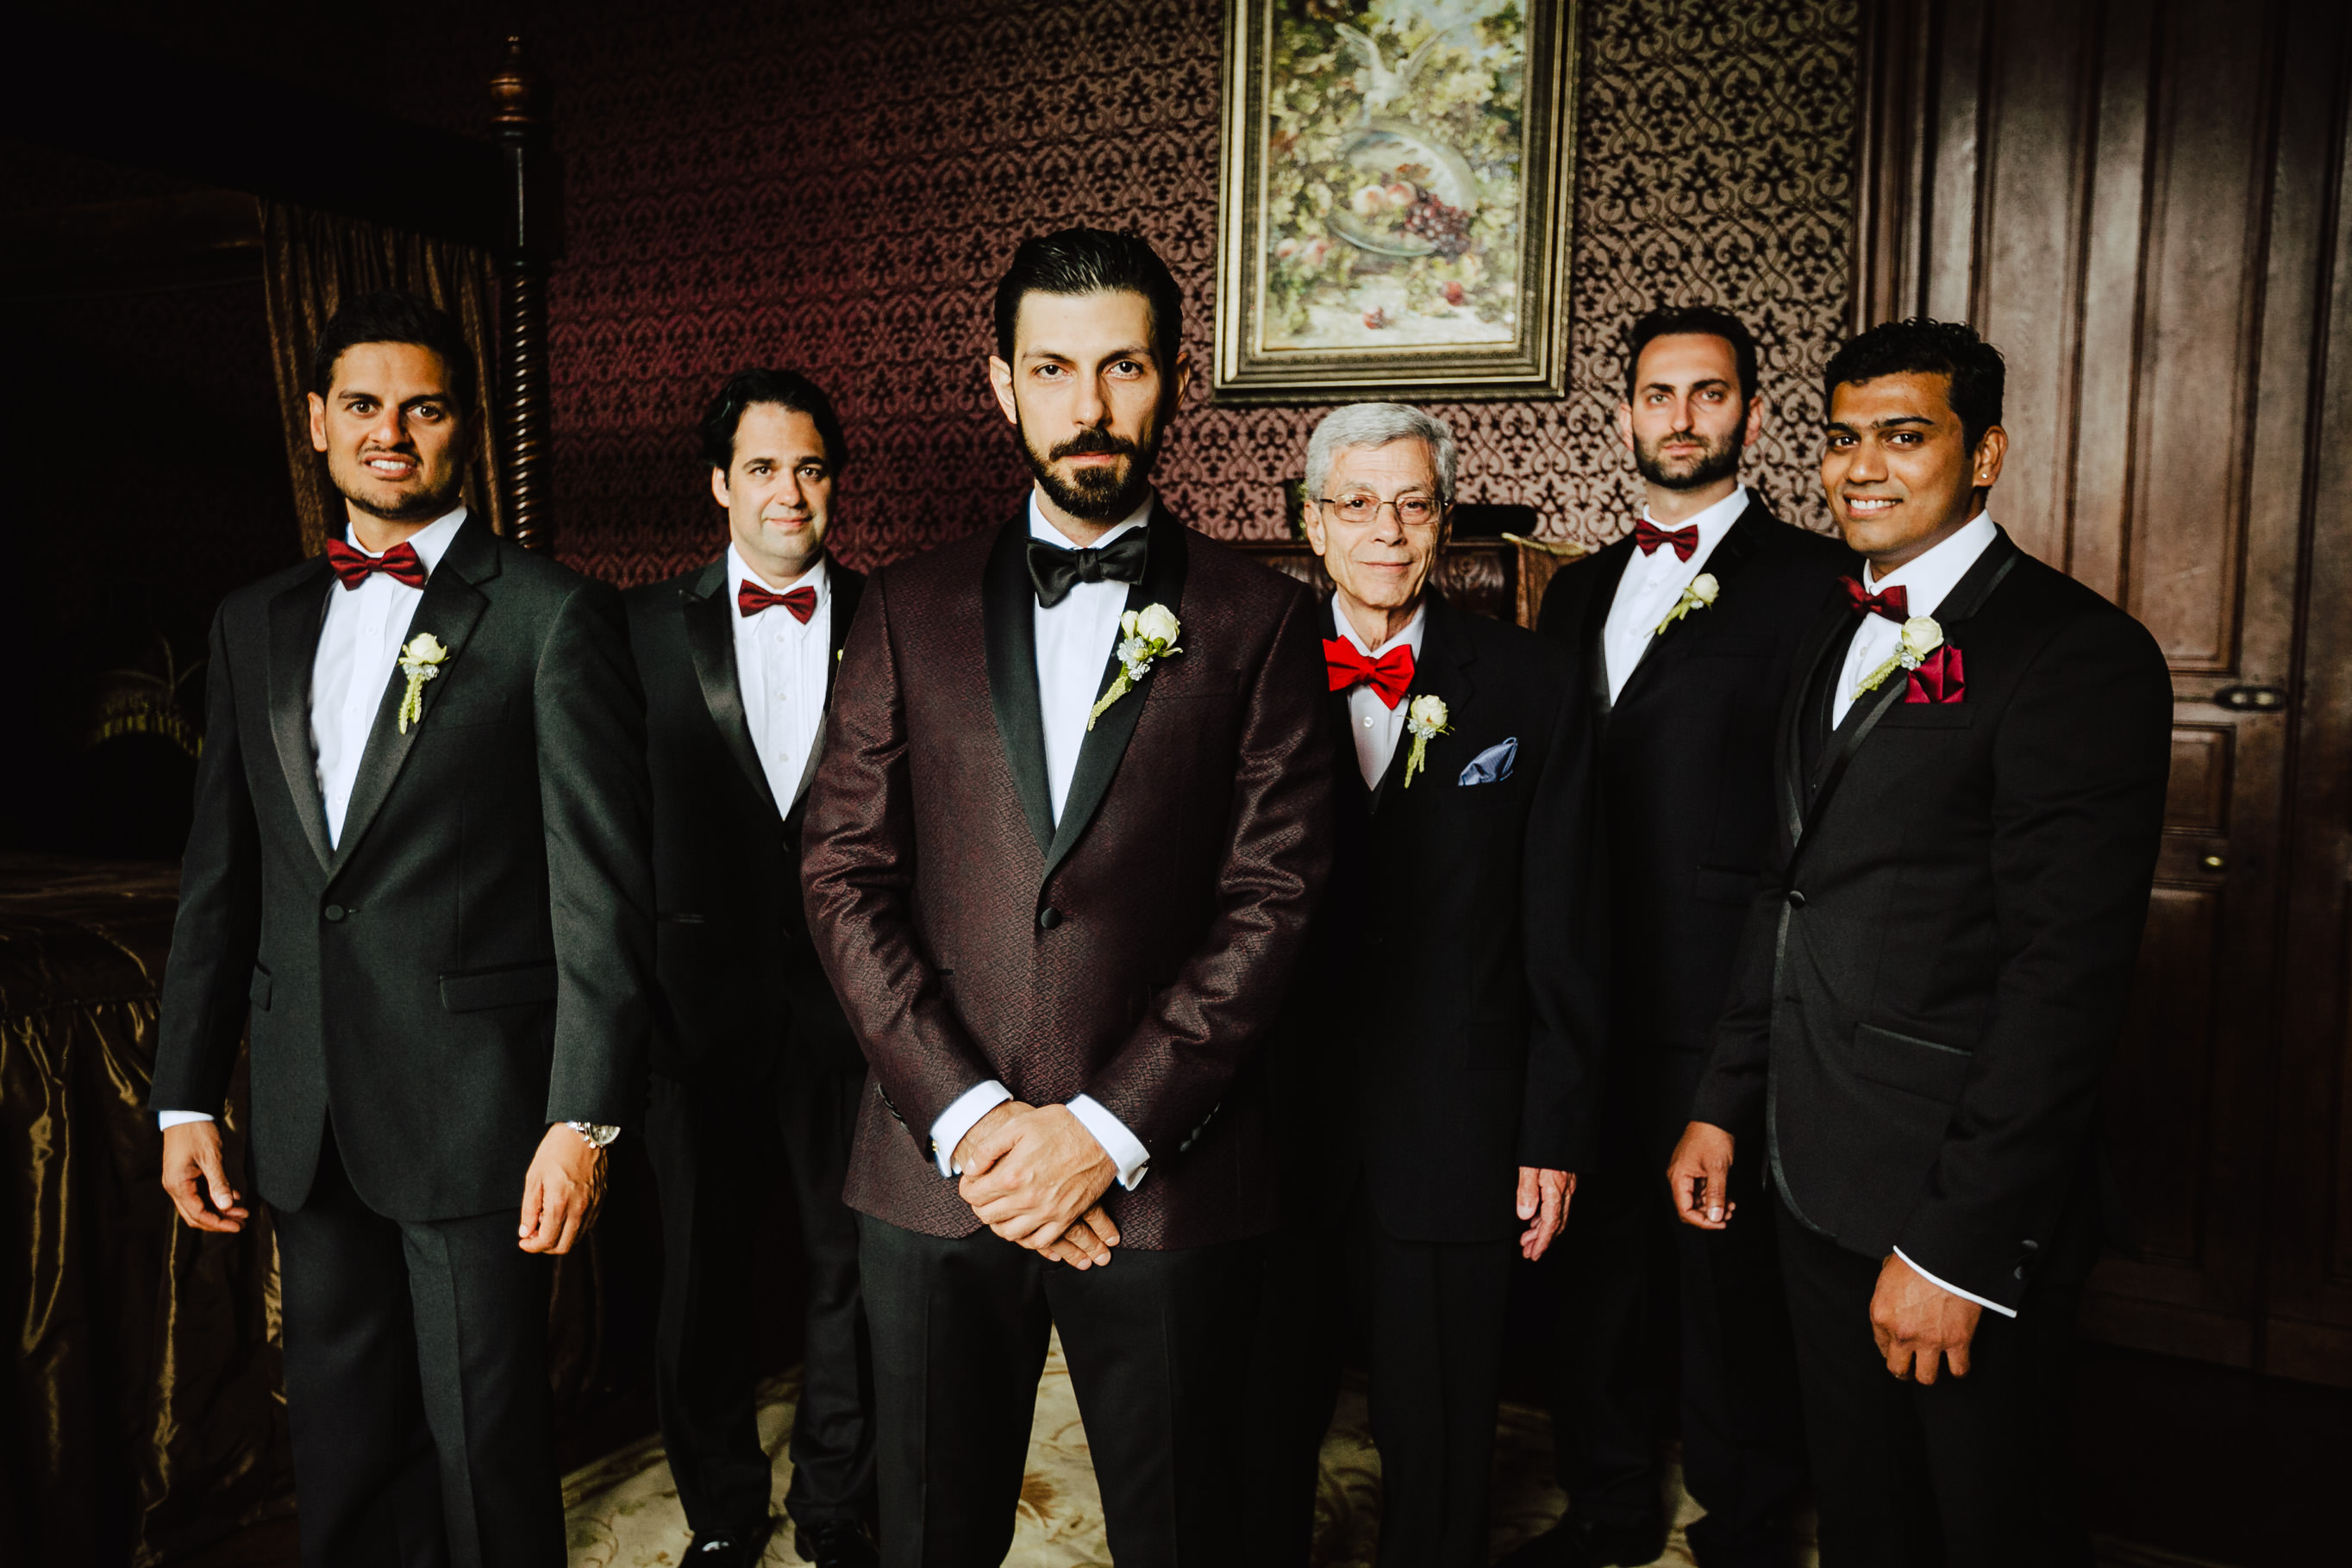 groom with groomsmen chateau challain